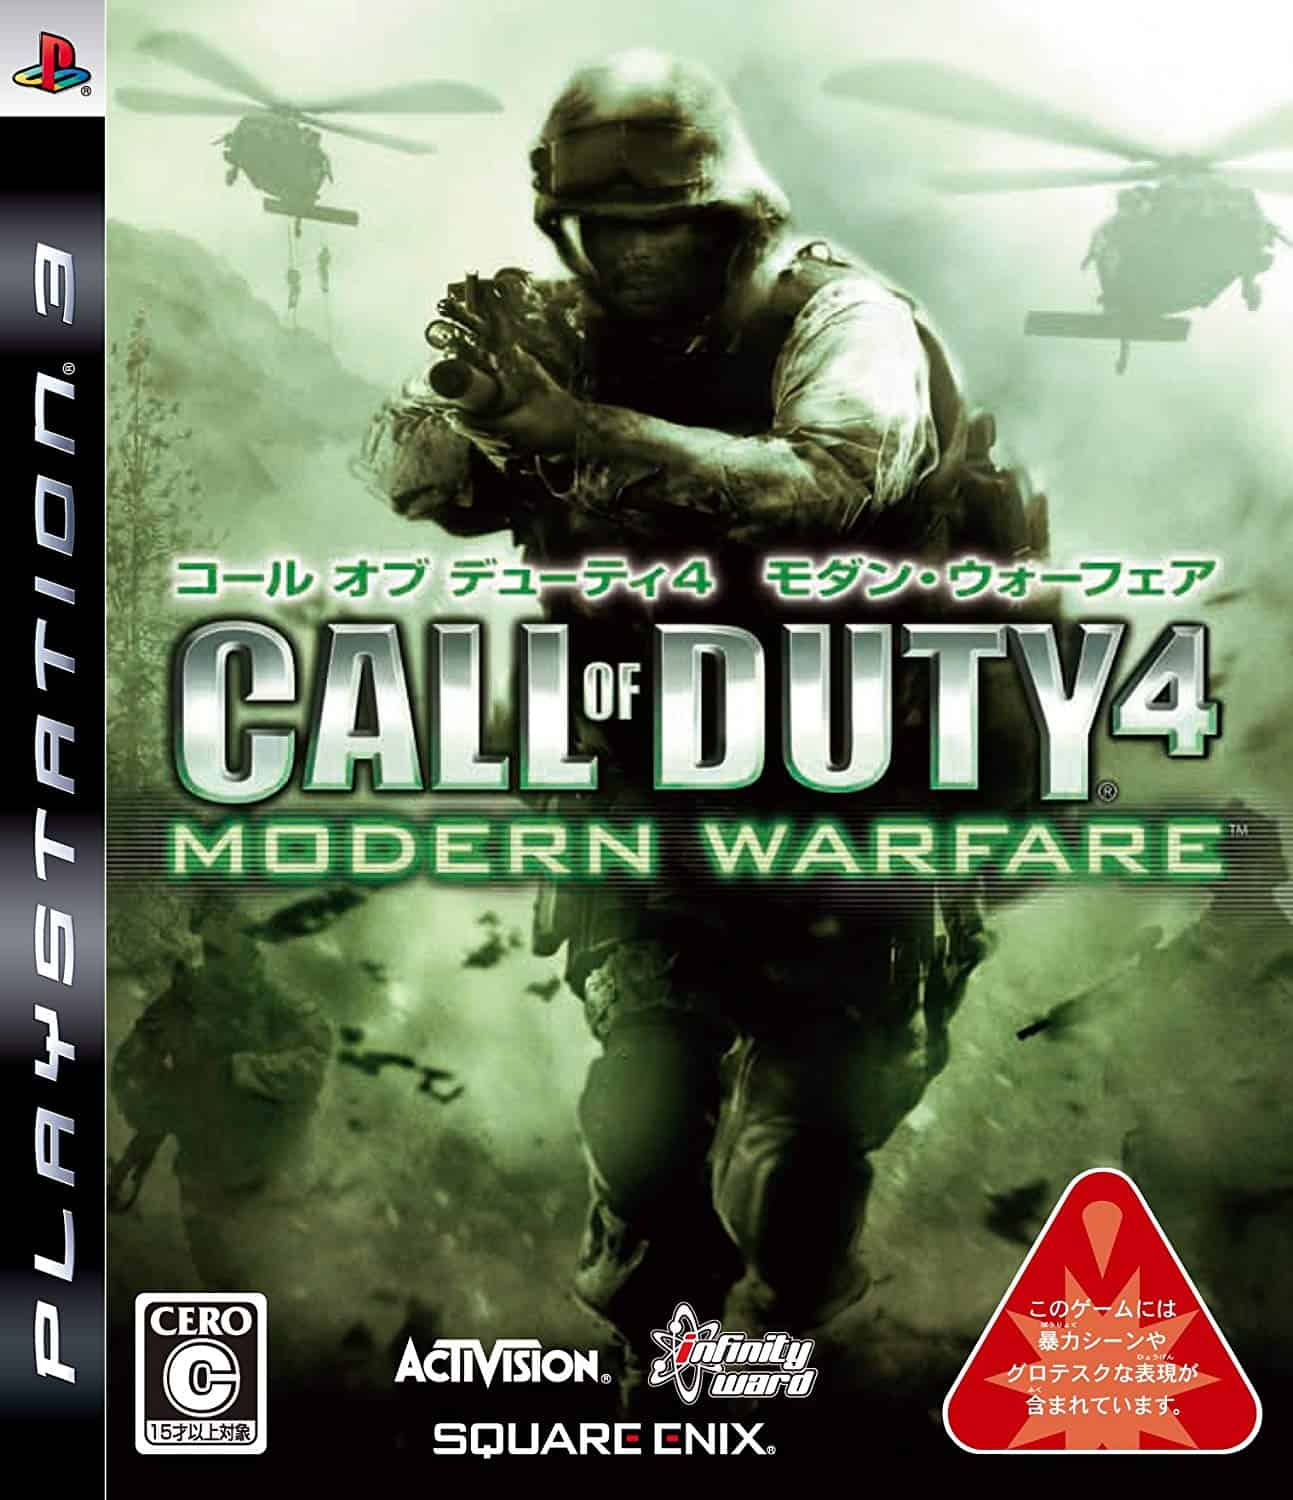 PS3] Call of Duty 4 : Modern Warfare Save Game - Game Save Download file